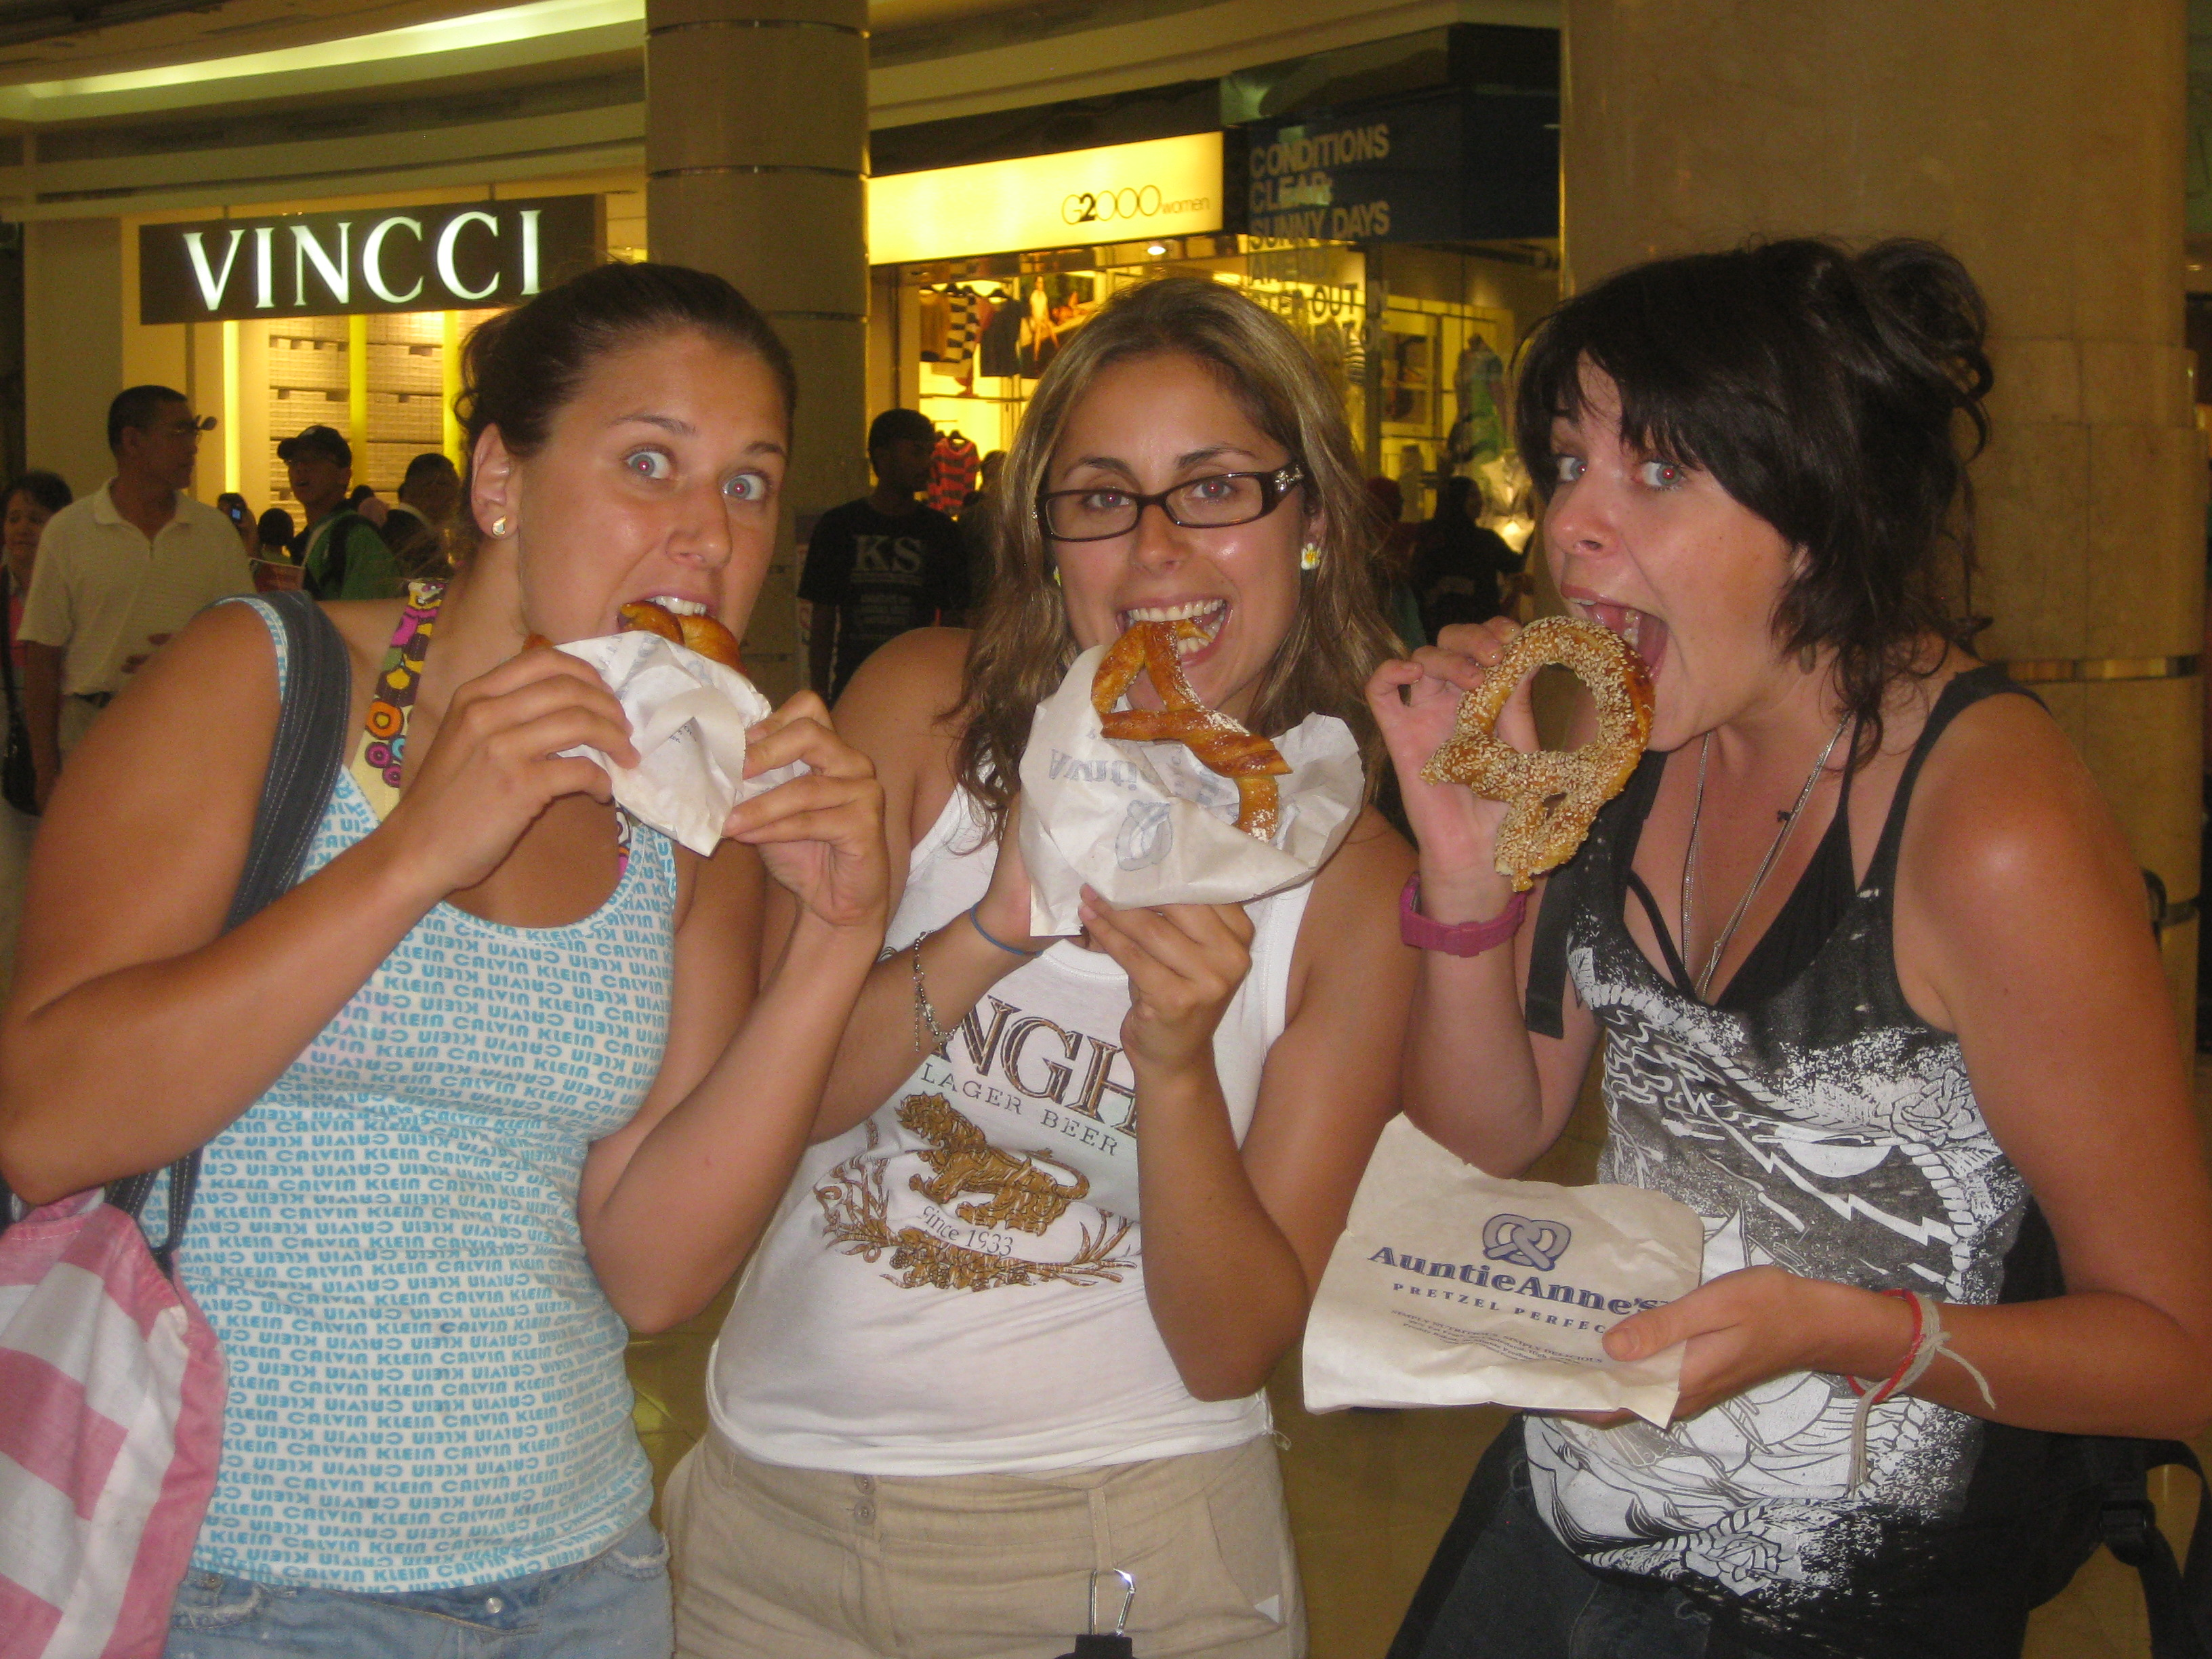 The girls and their pretzels